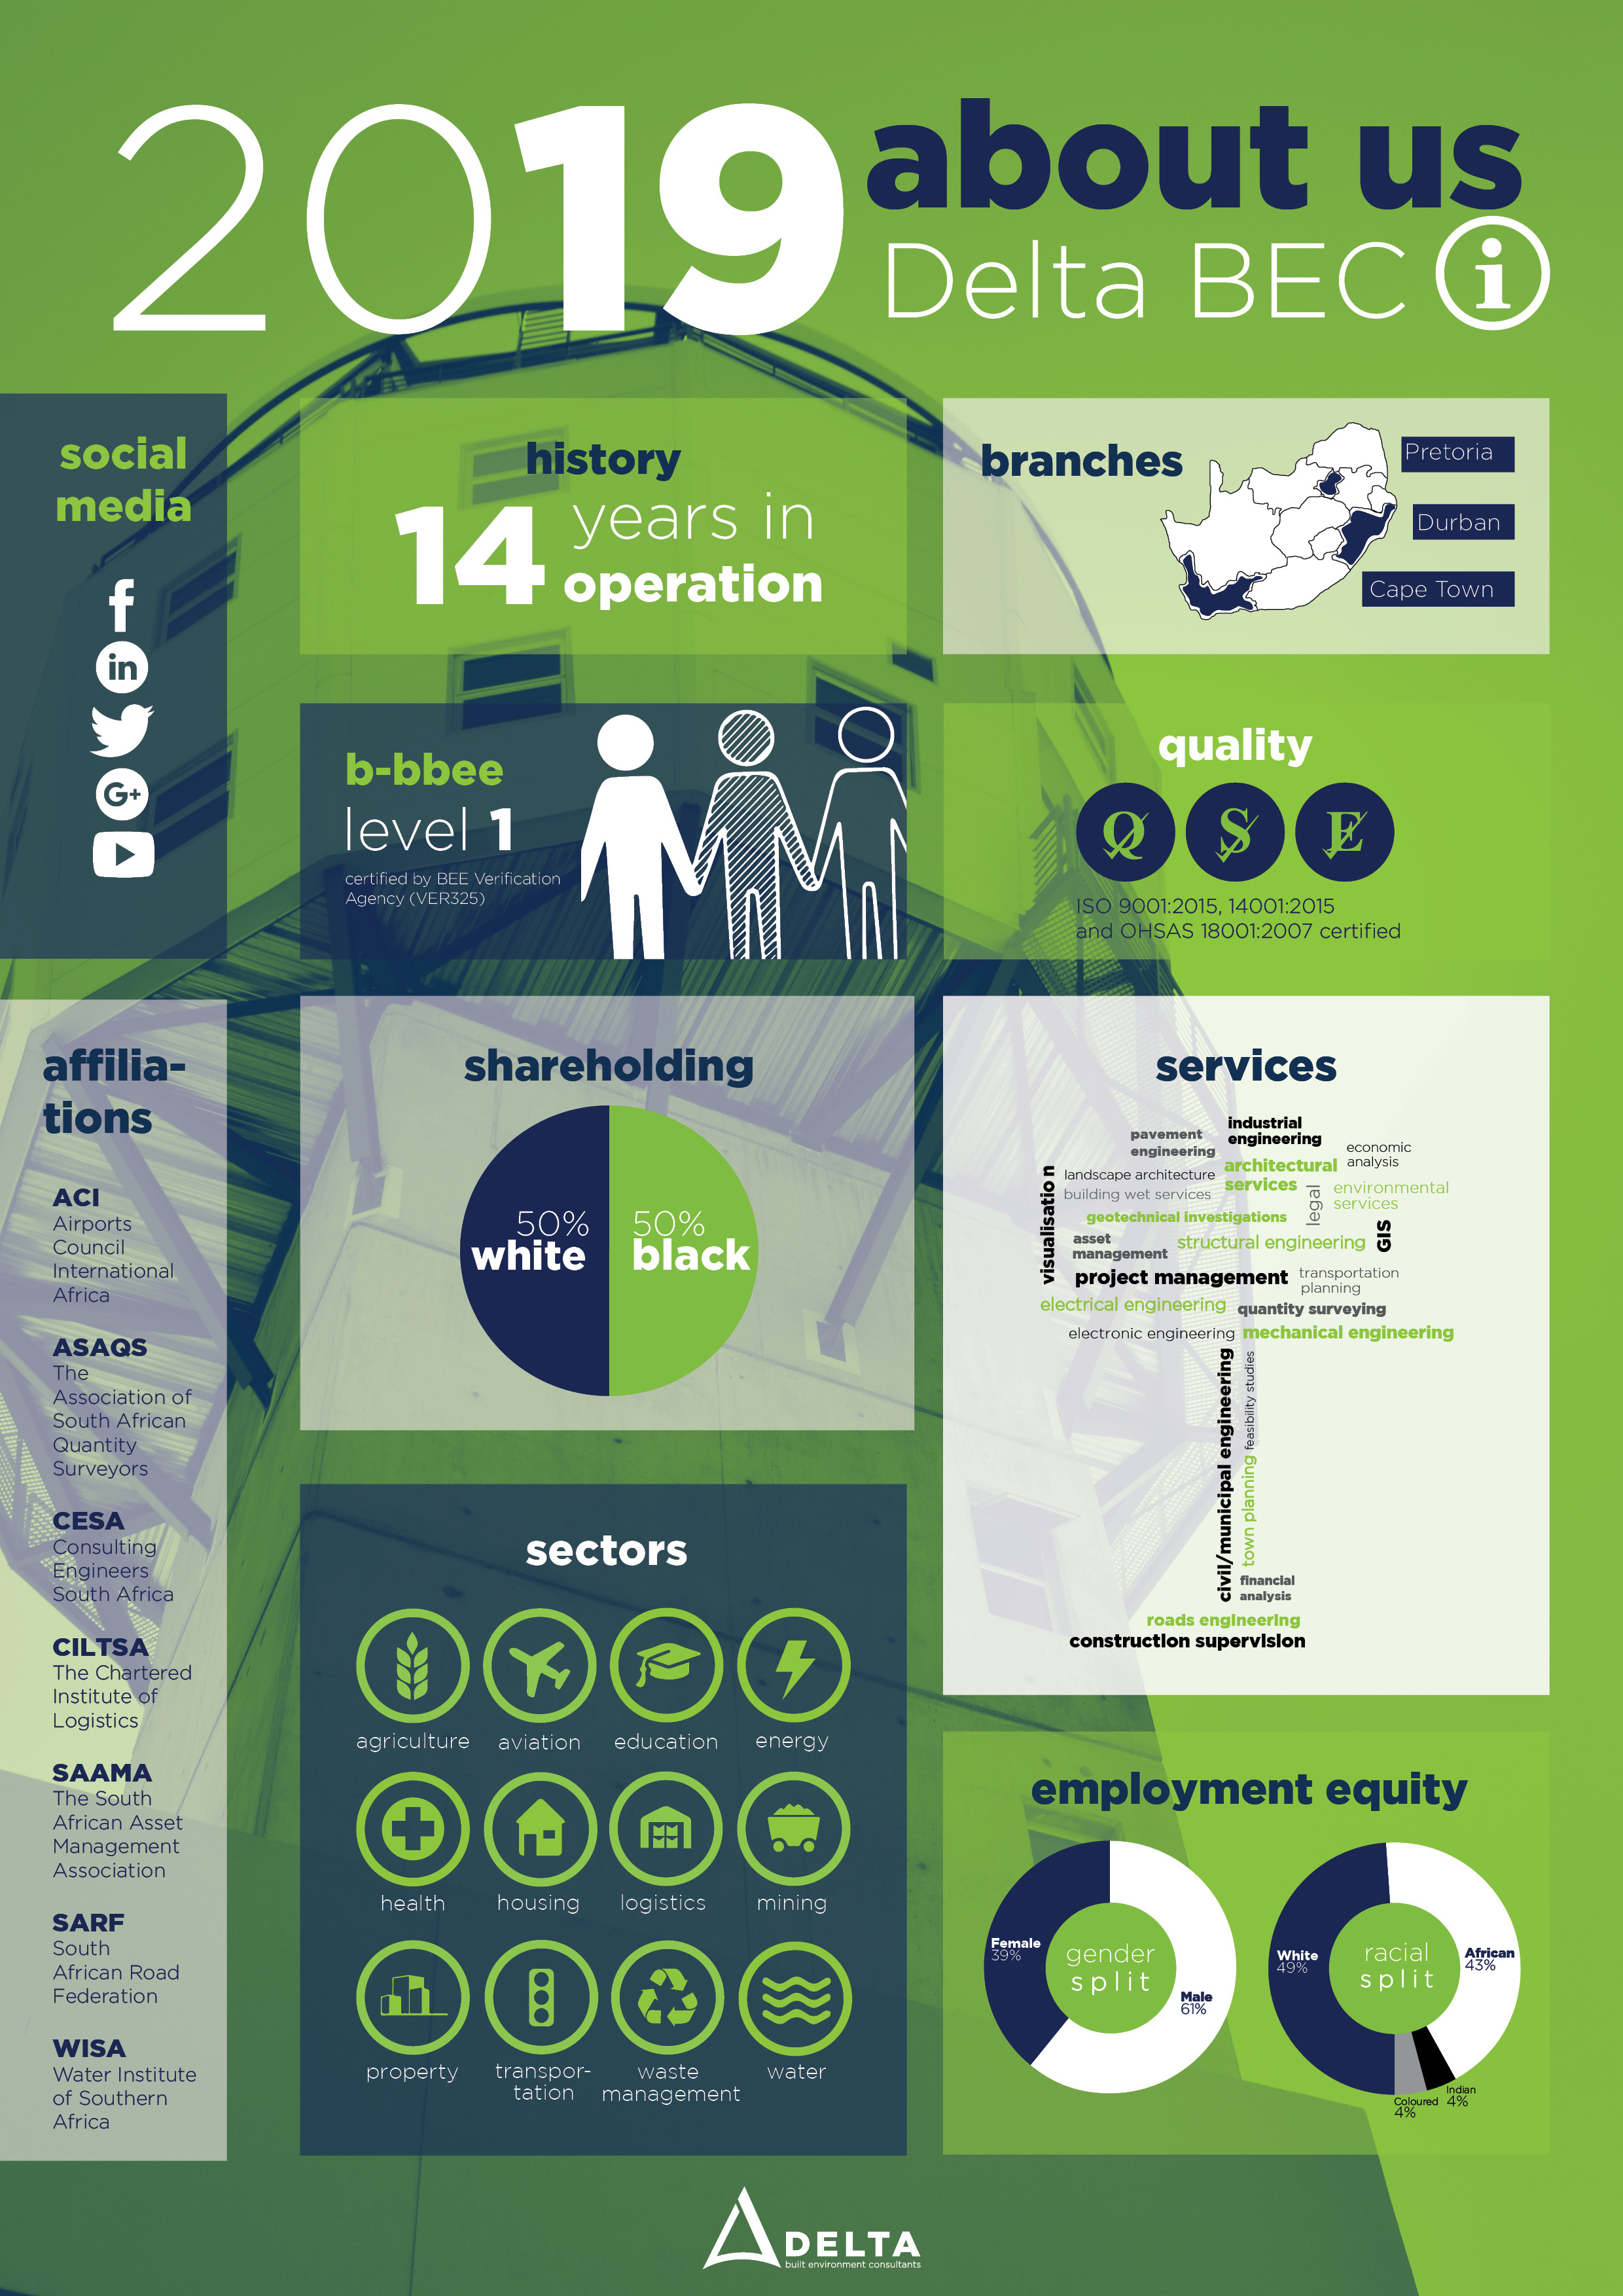 Delta BEC - About us infography 2019